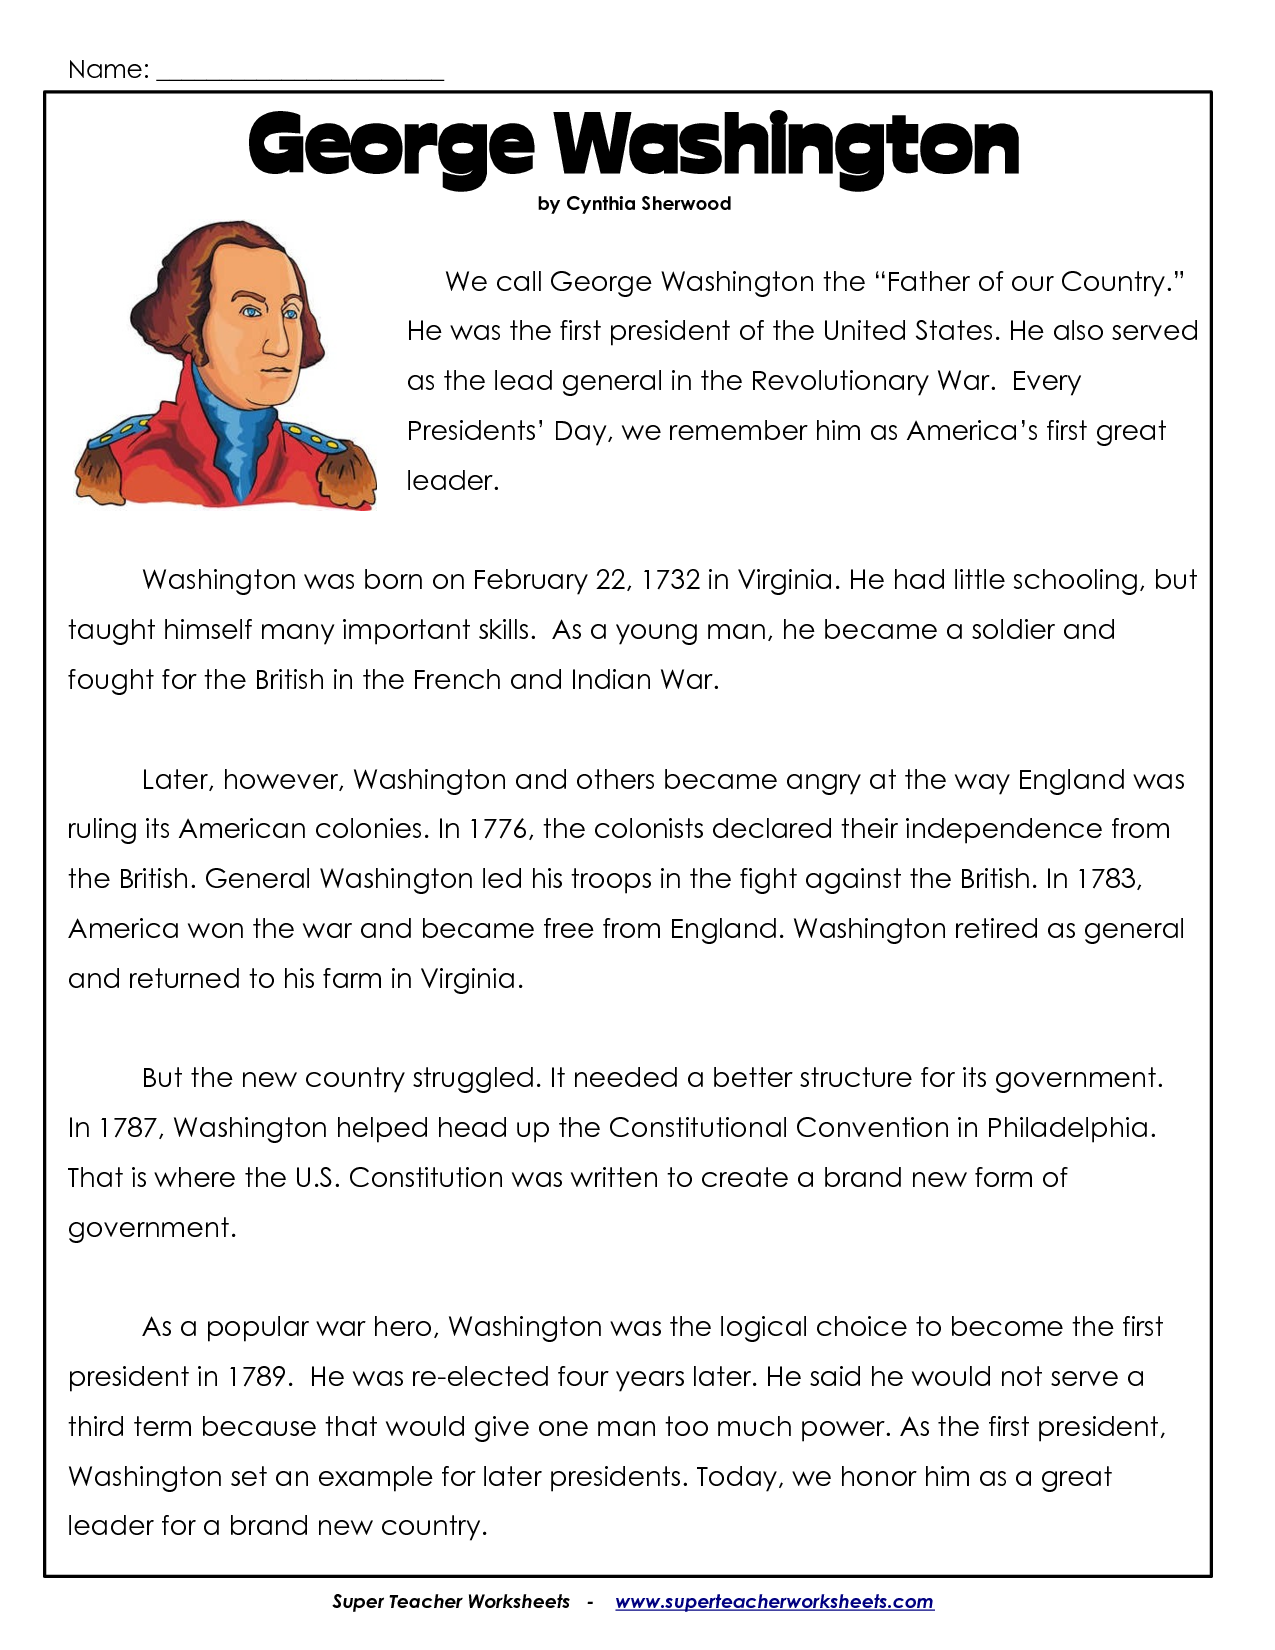 president s day coloring worksheet george washington worksheets president s day coloring worksheet george washington worksheets